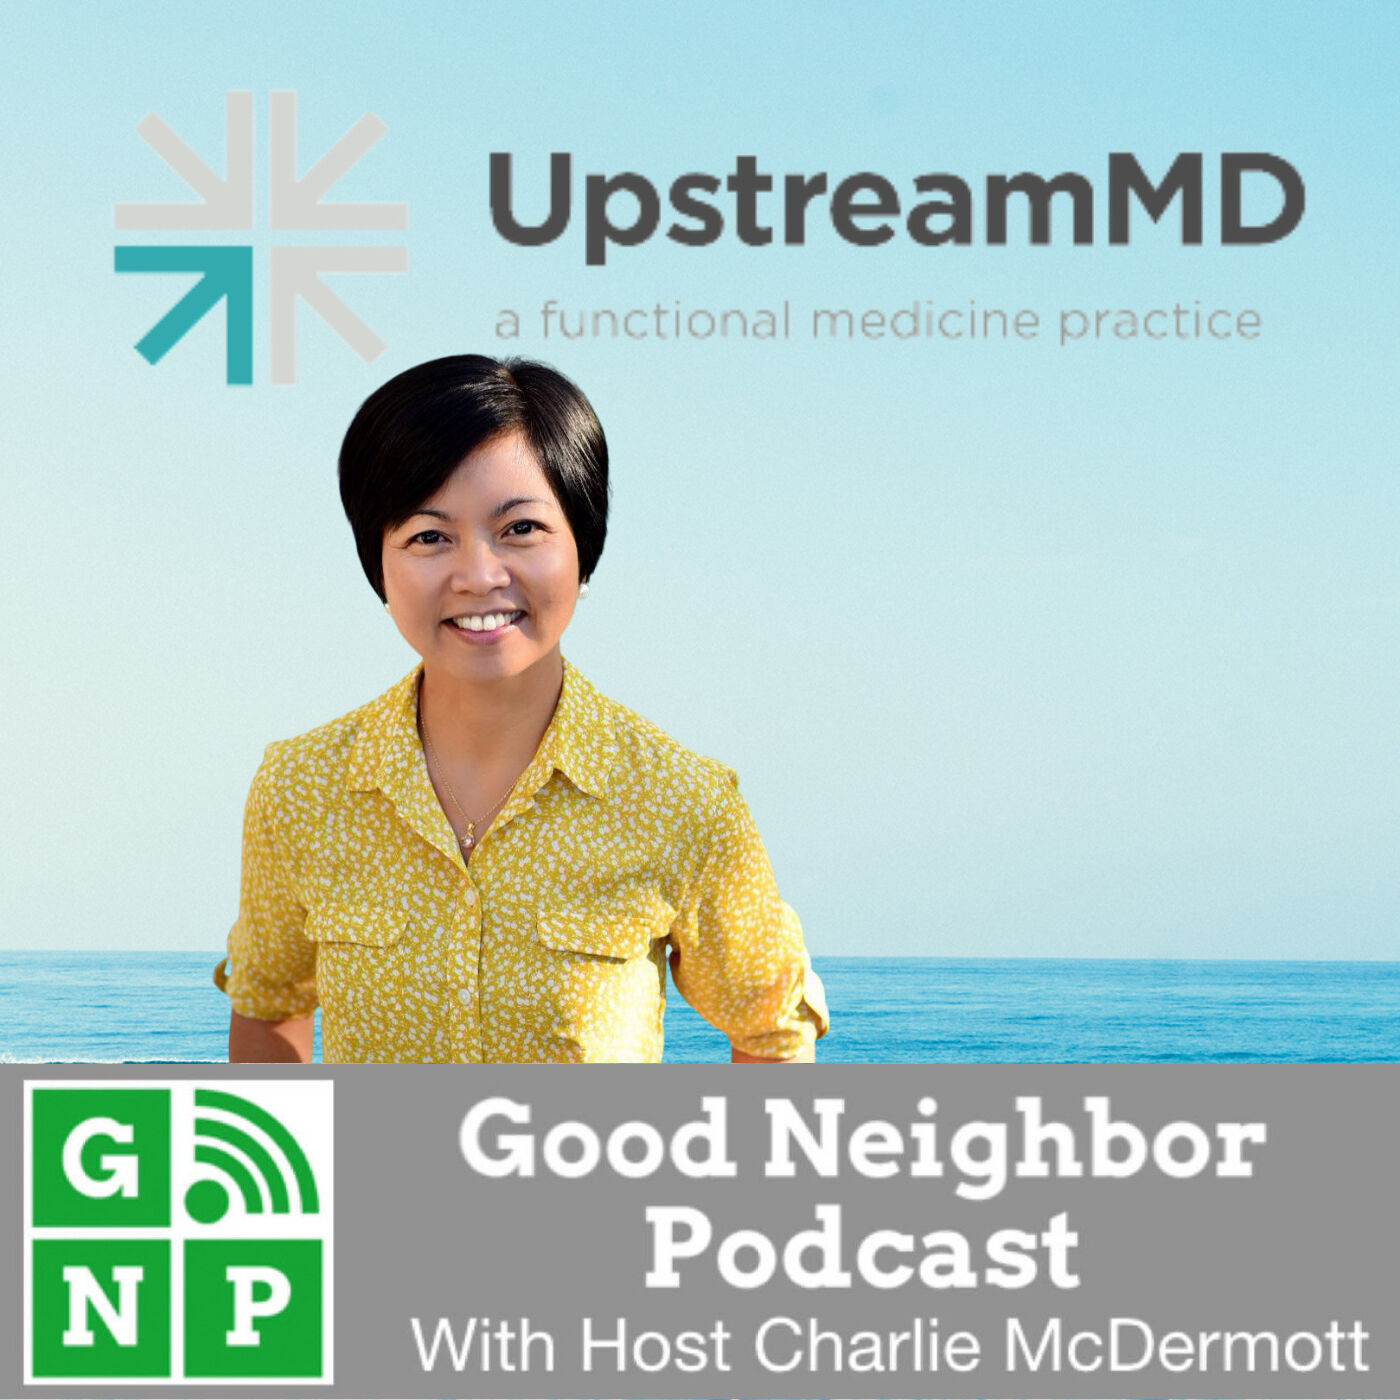 EP #520: Upstream MD with Dr. Zorayda Torres